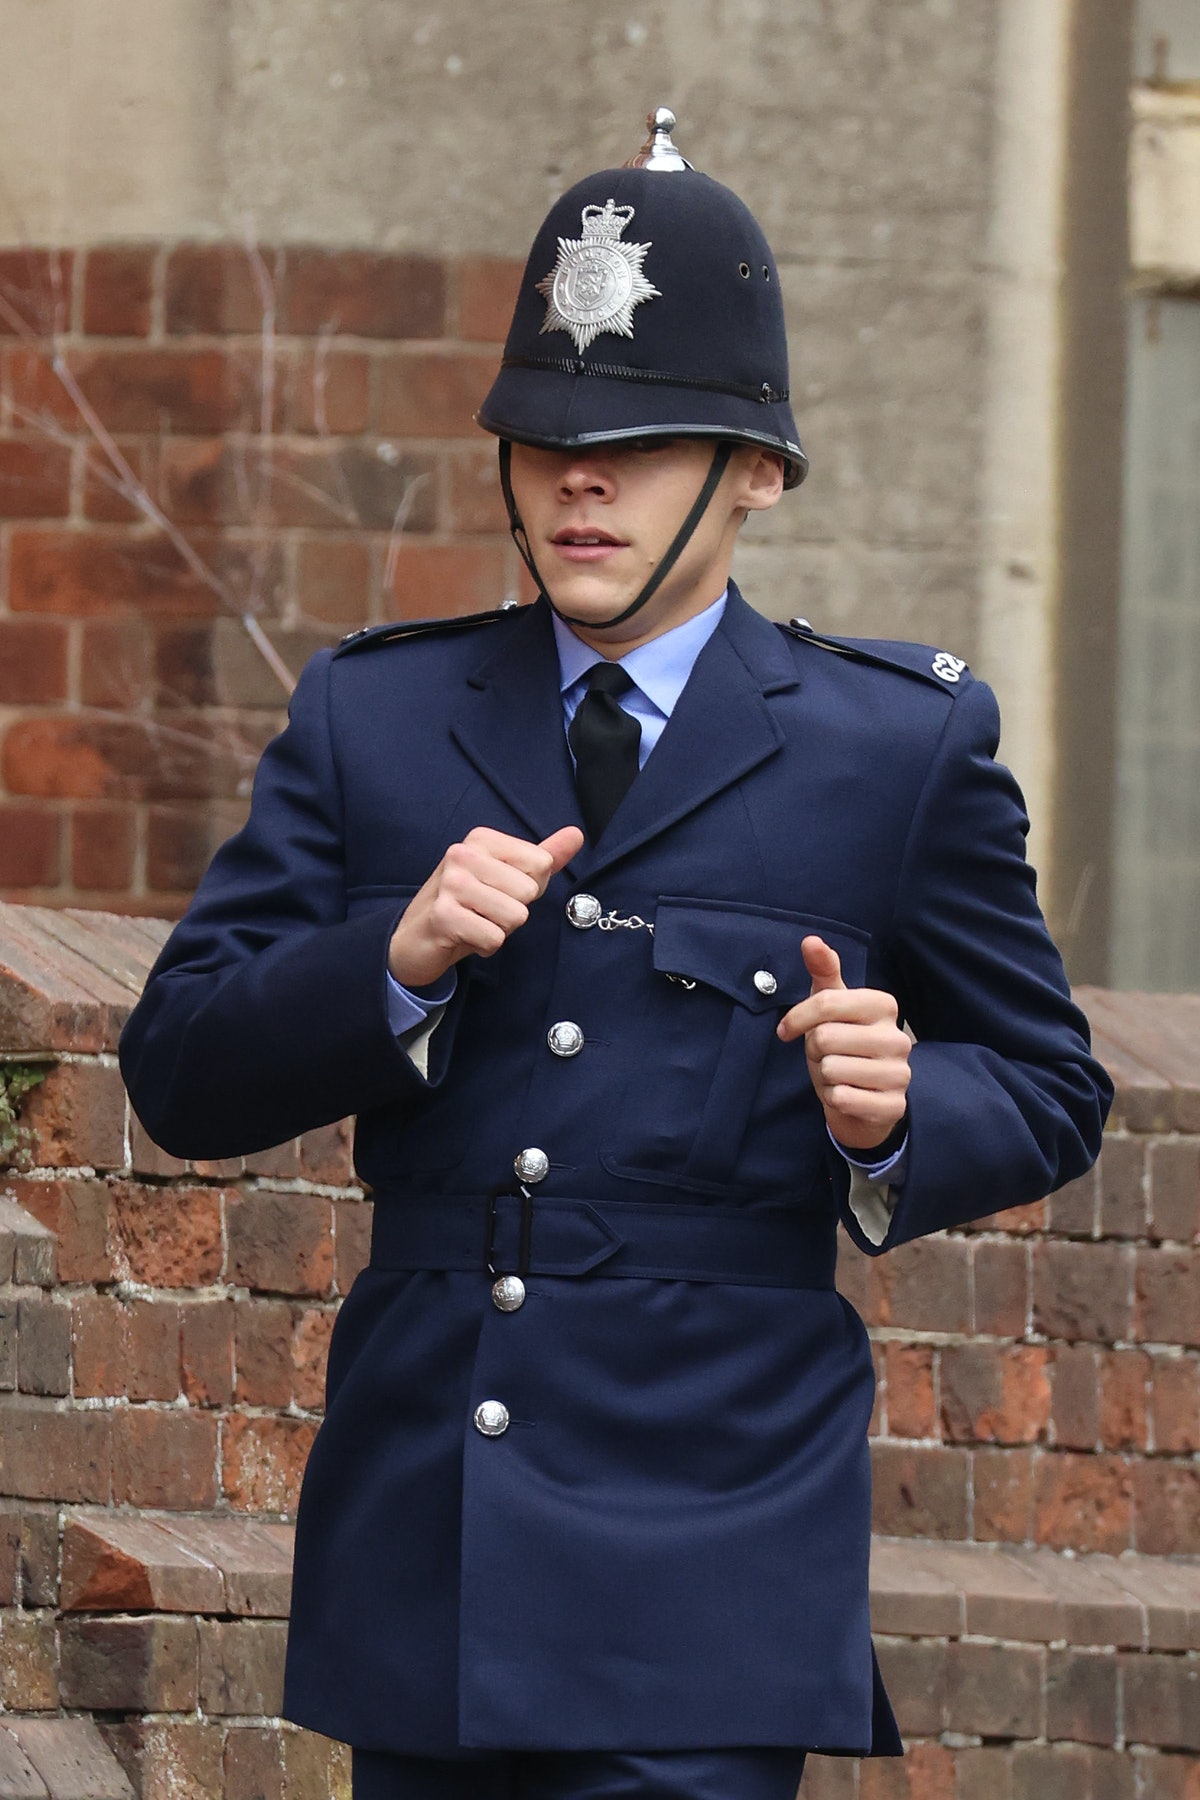 Harry Styles dressed as a cop and running